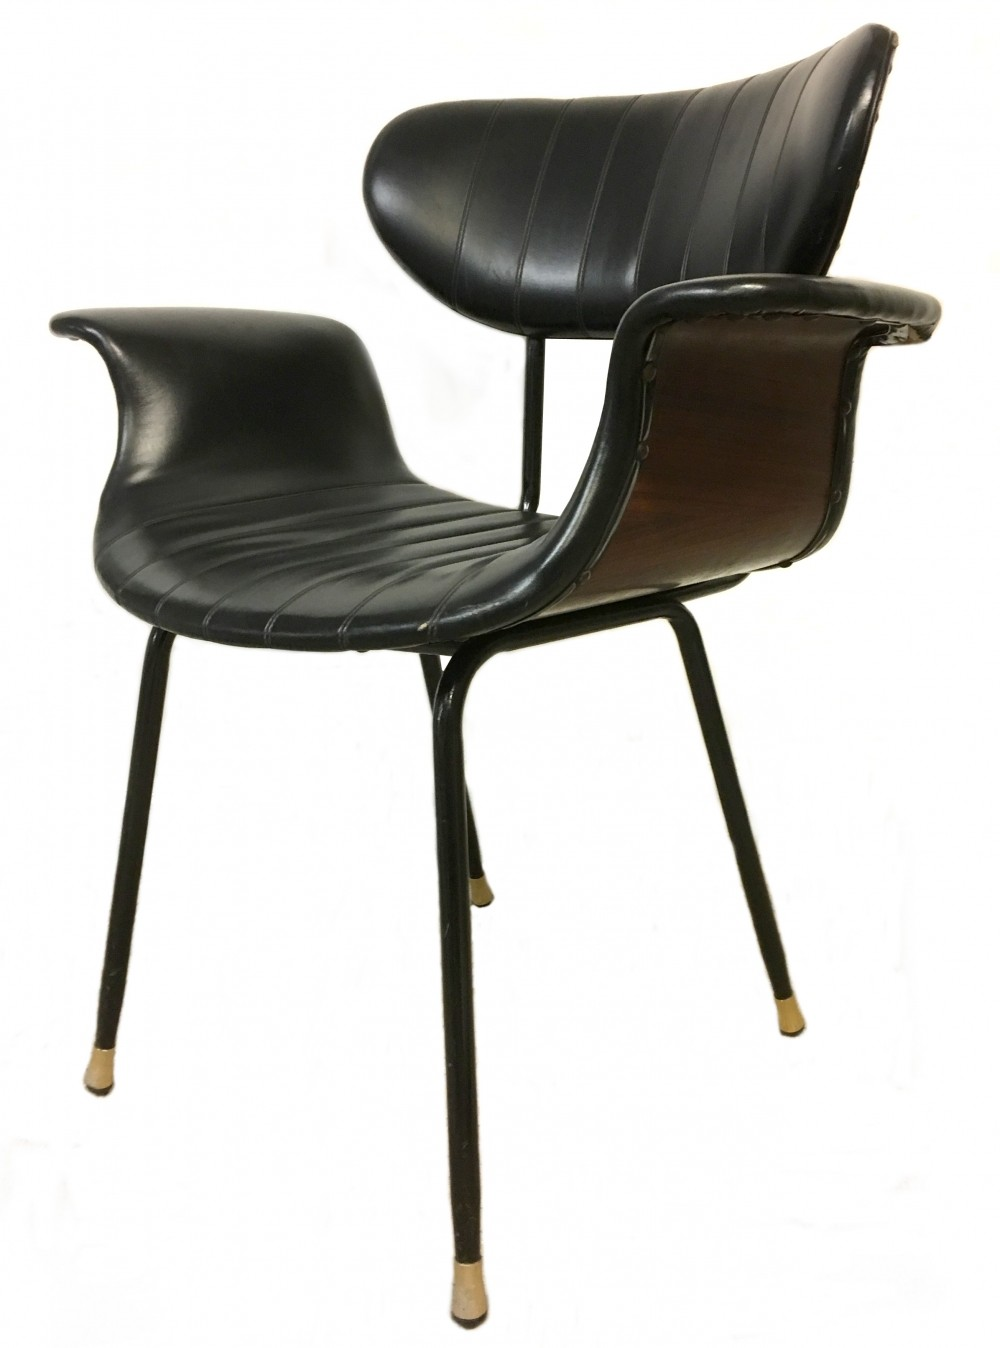 Swan Arm Chair By MIM Roma, 1960s